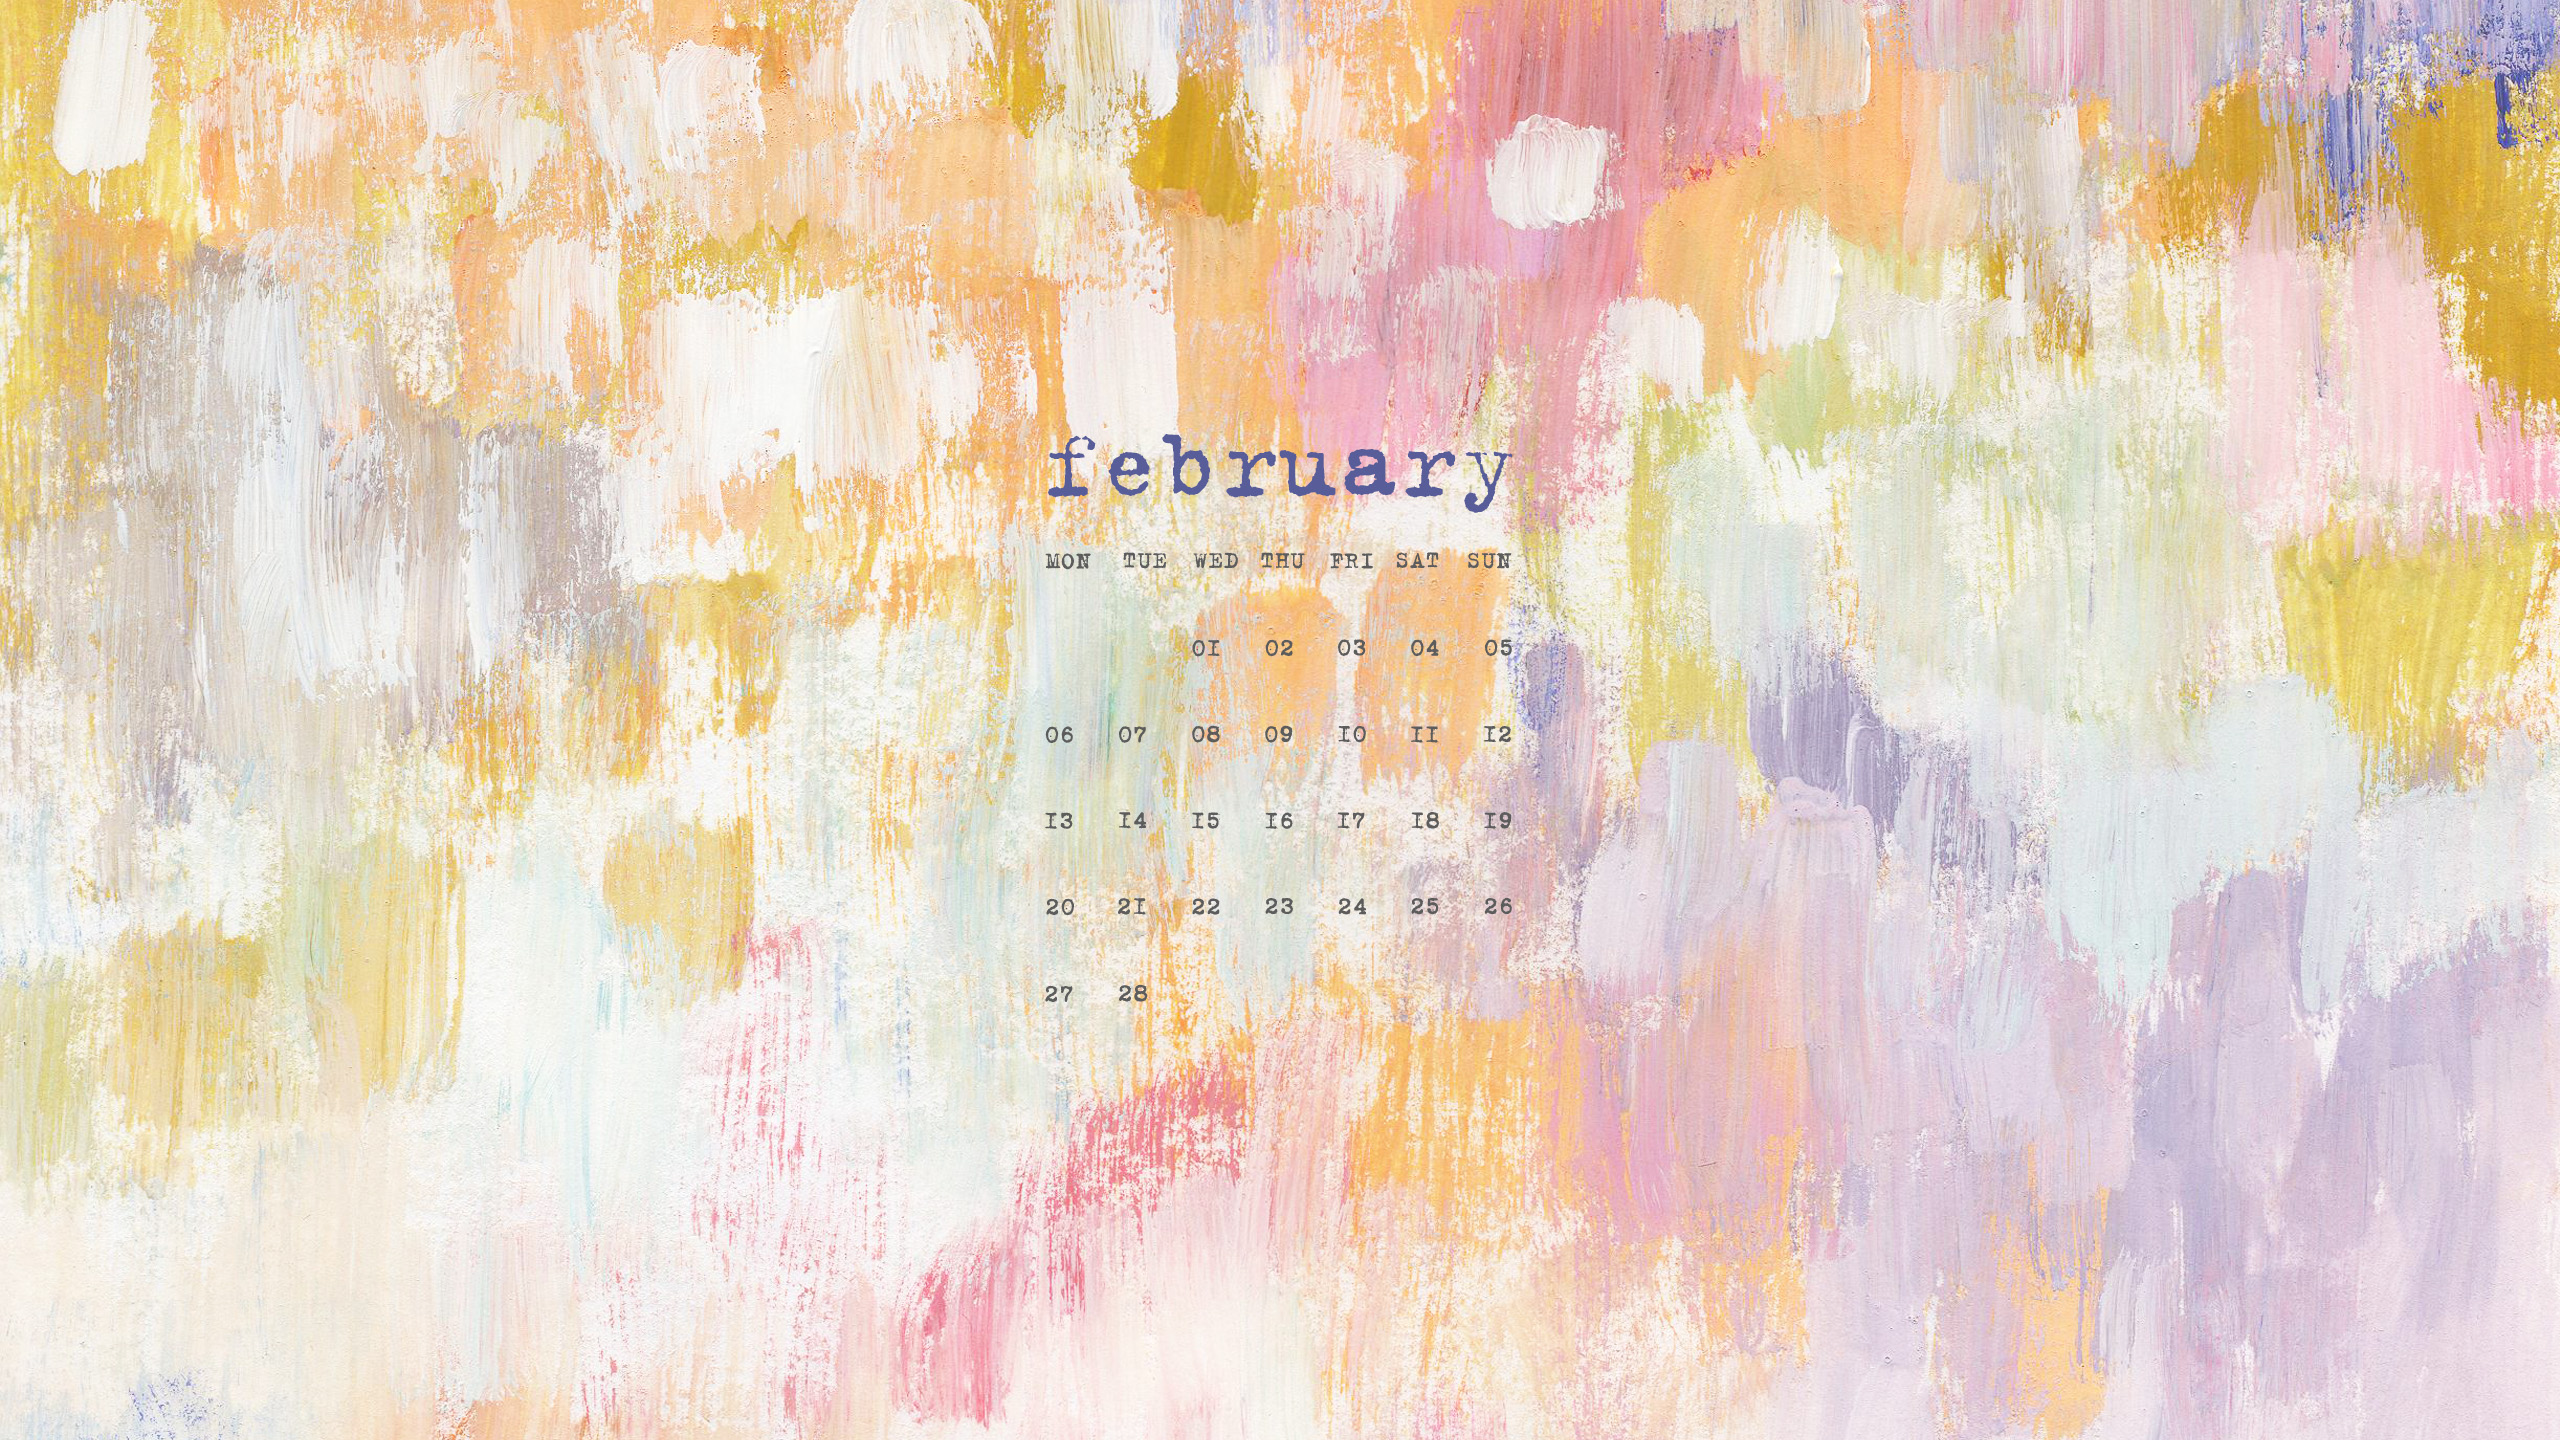 February 2017 wallpaper free (83 Wallpapers) – HD Wallpapers